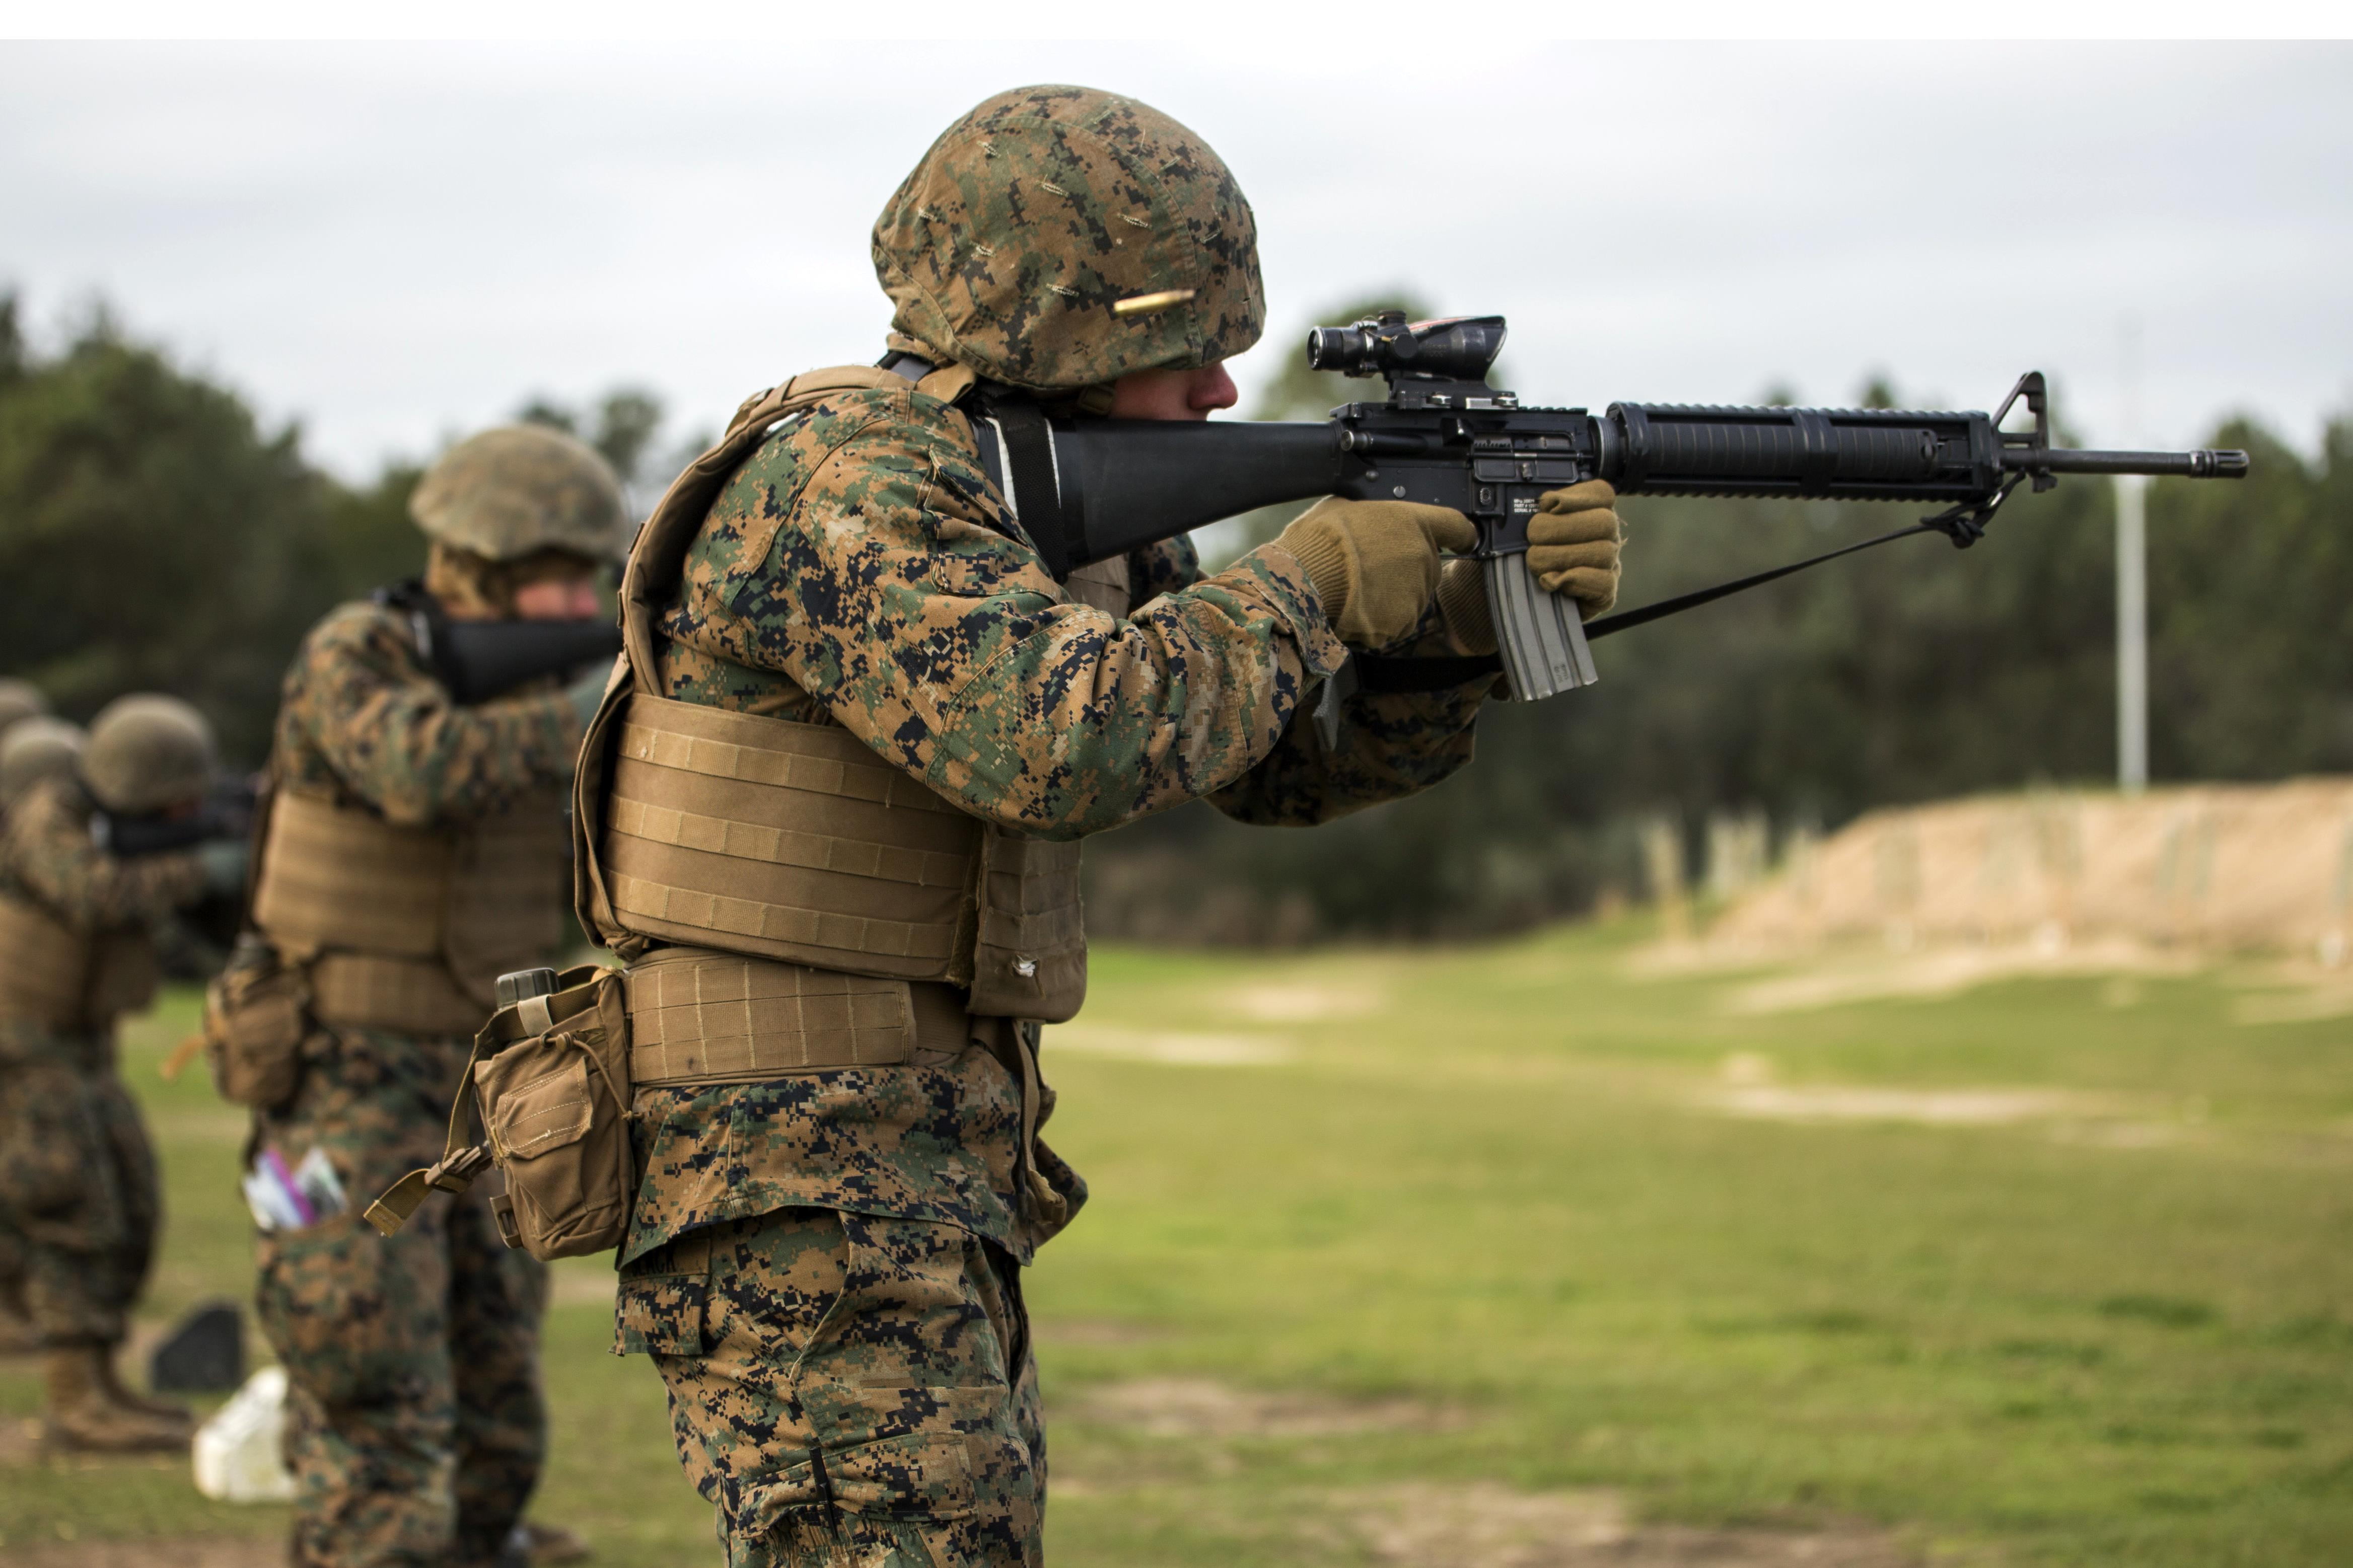 marine corps leadership essays Get access to leadership marine corps essays only from anti essays listed results 1 - 30 get studying today and get the grades you want only at.